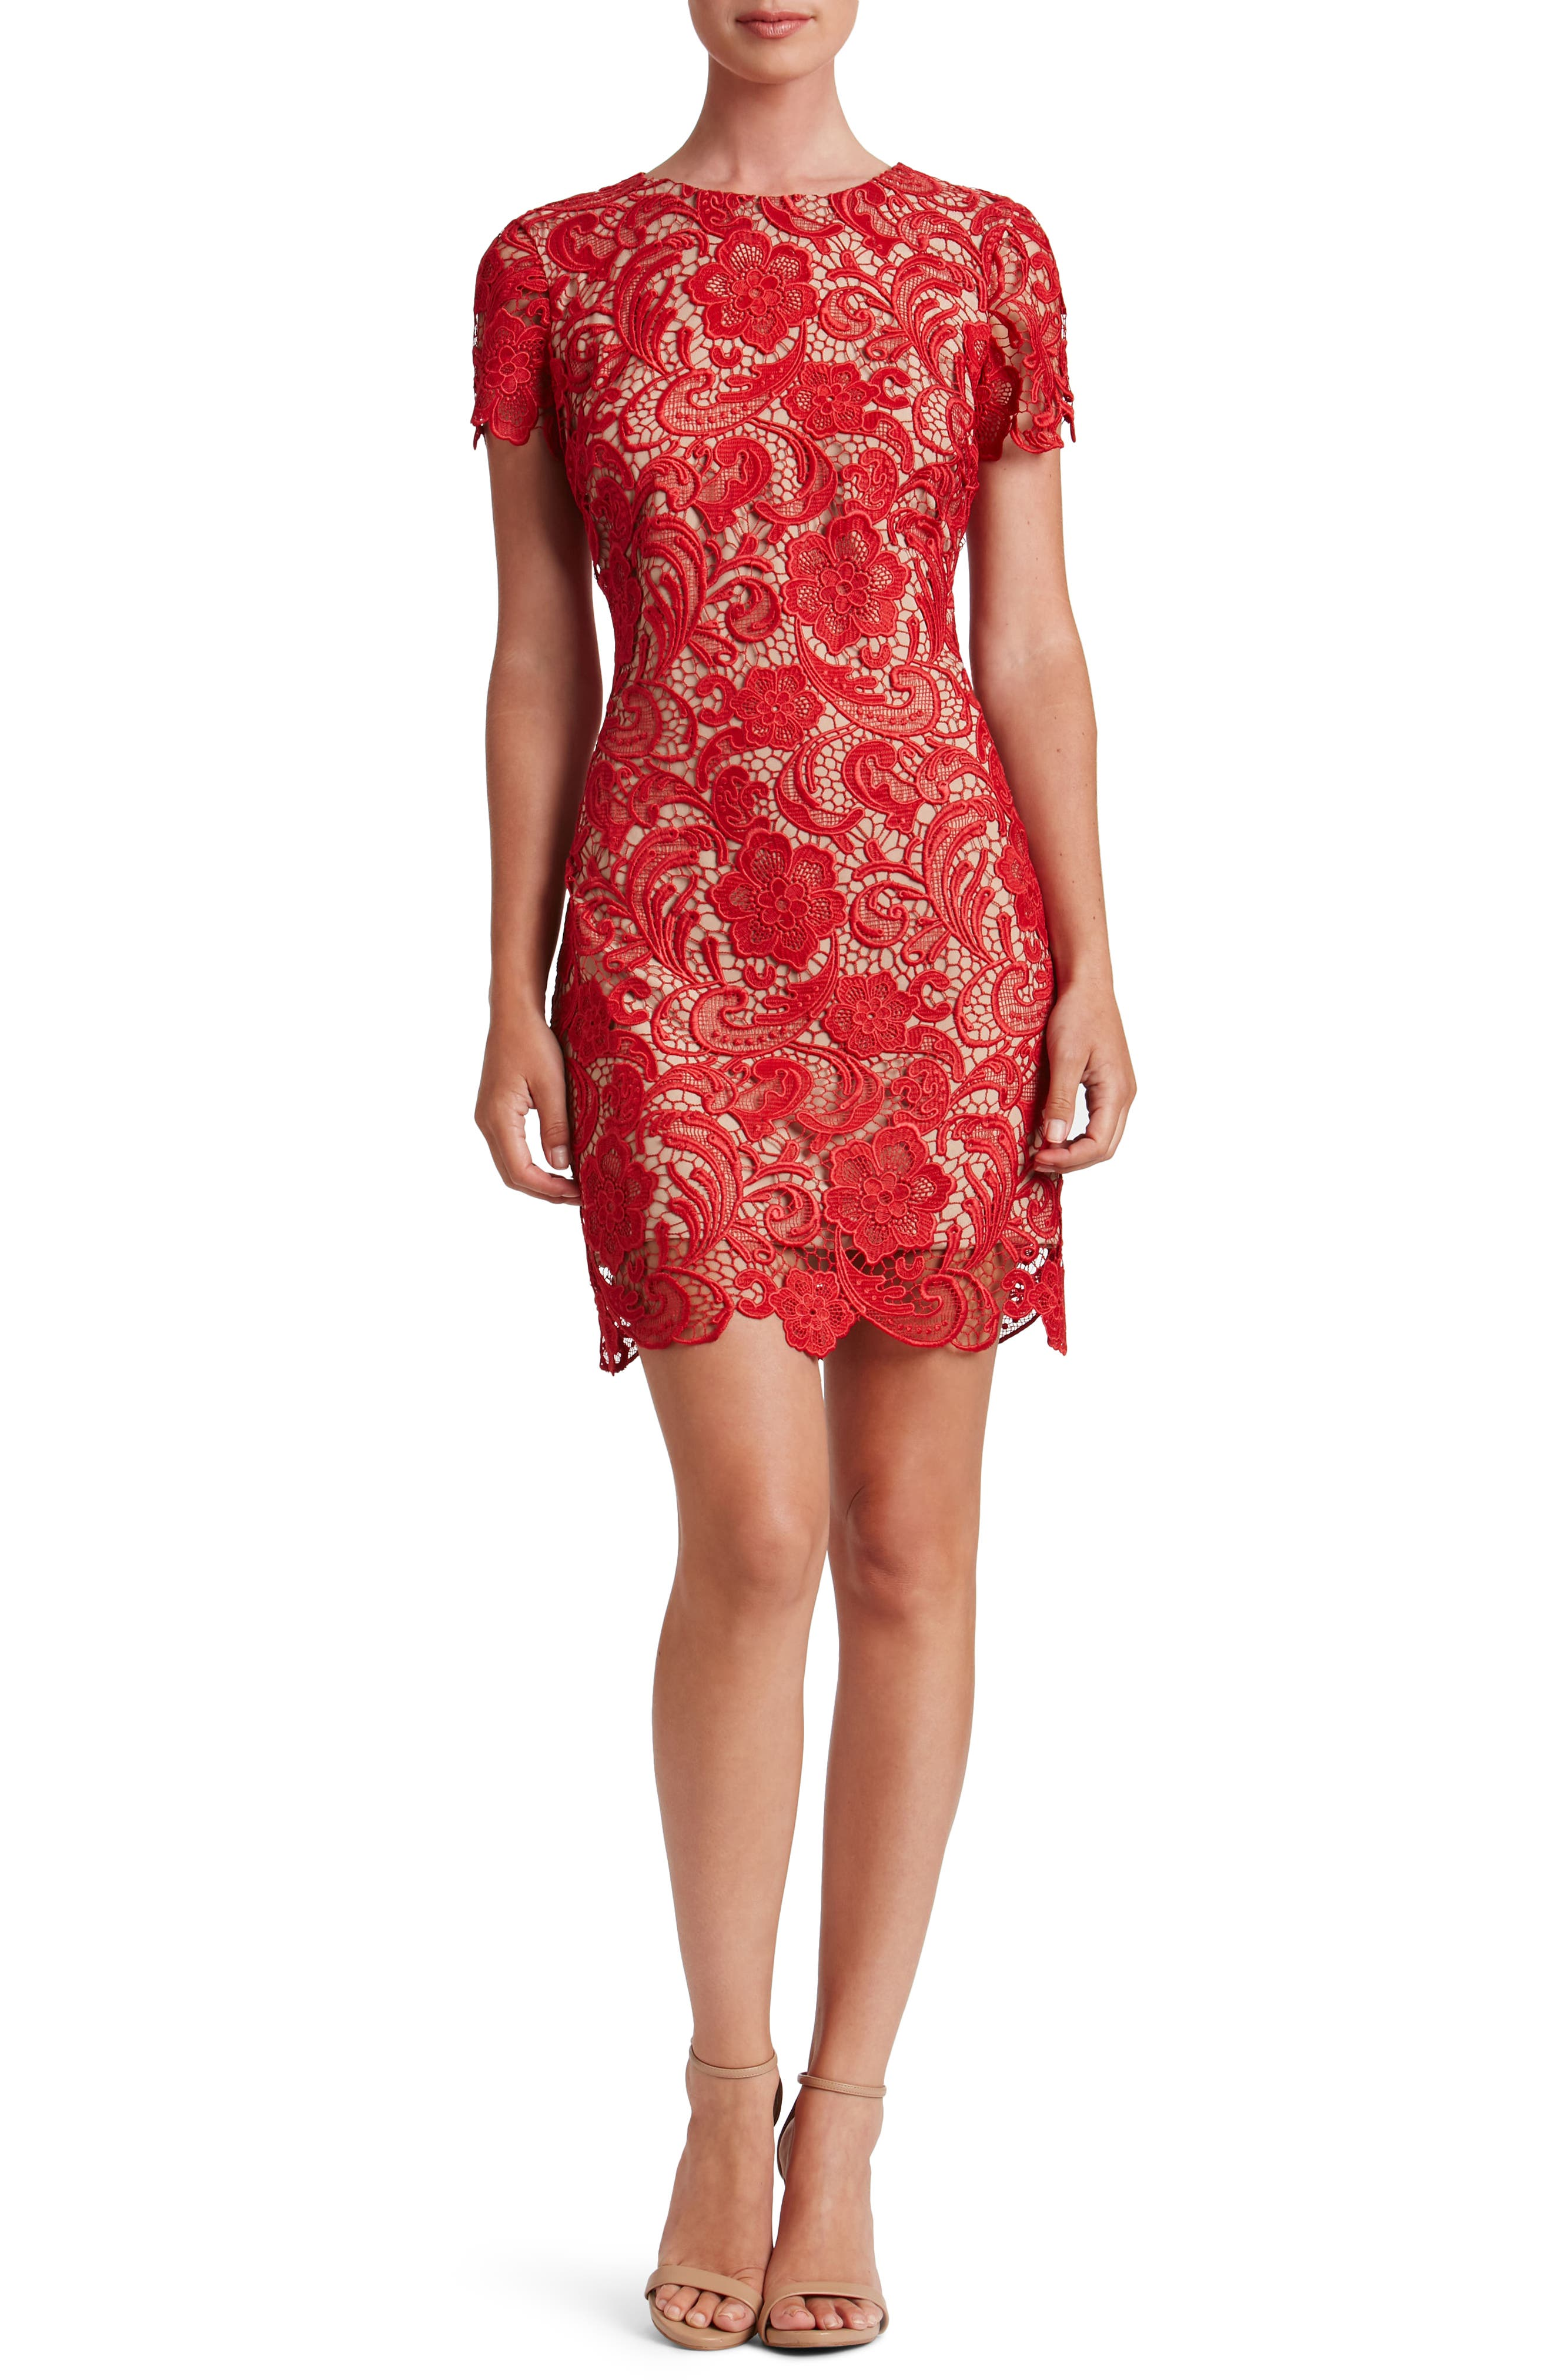 Cocktail dresses red lace dresses